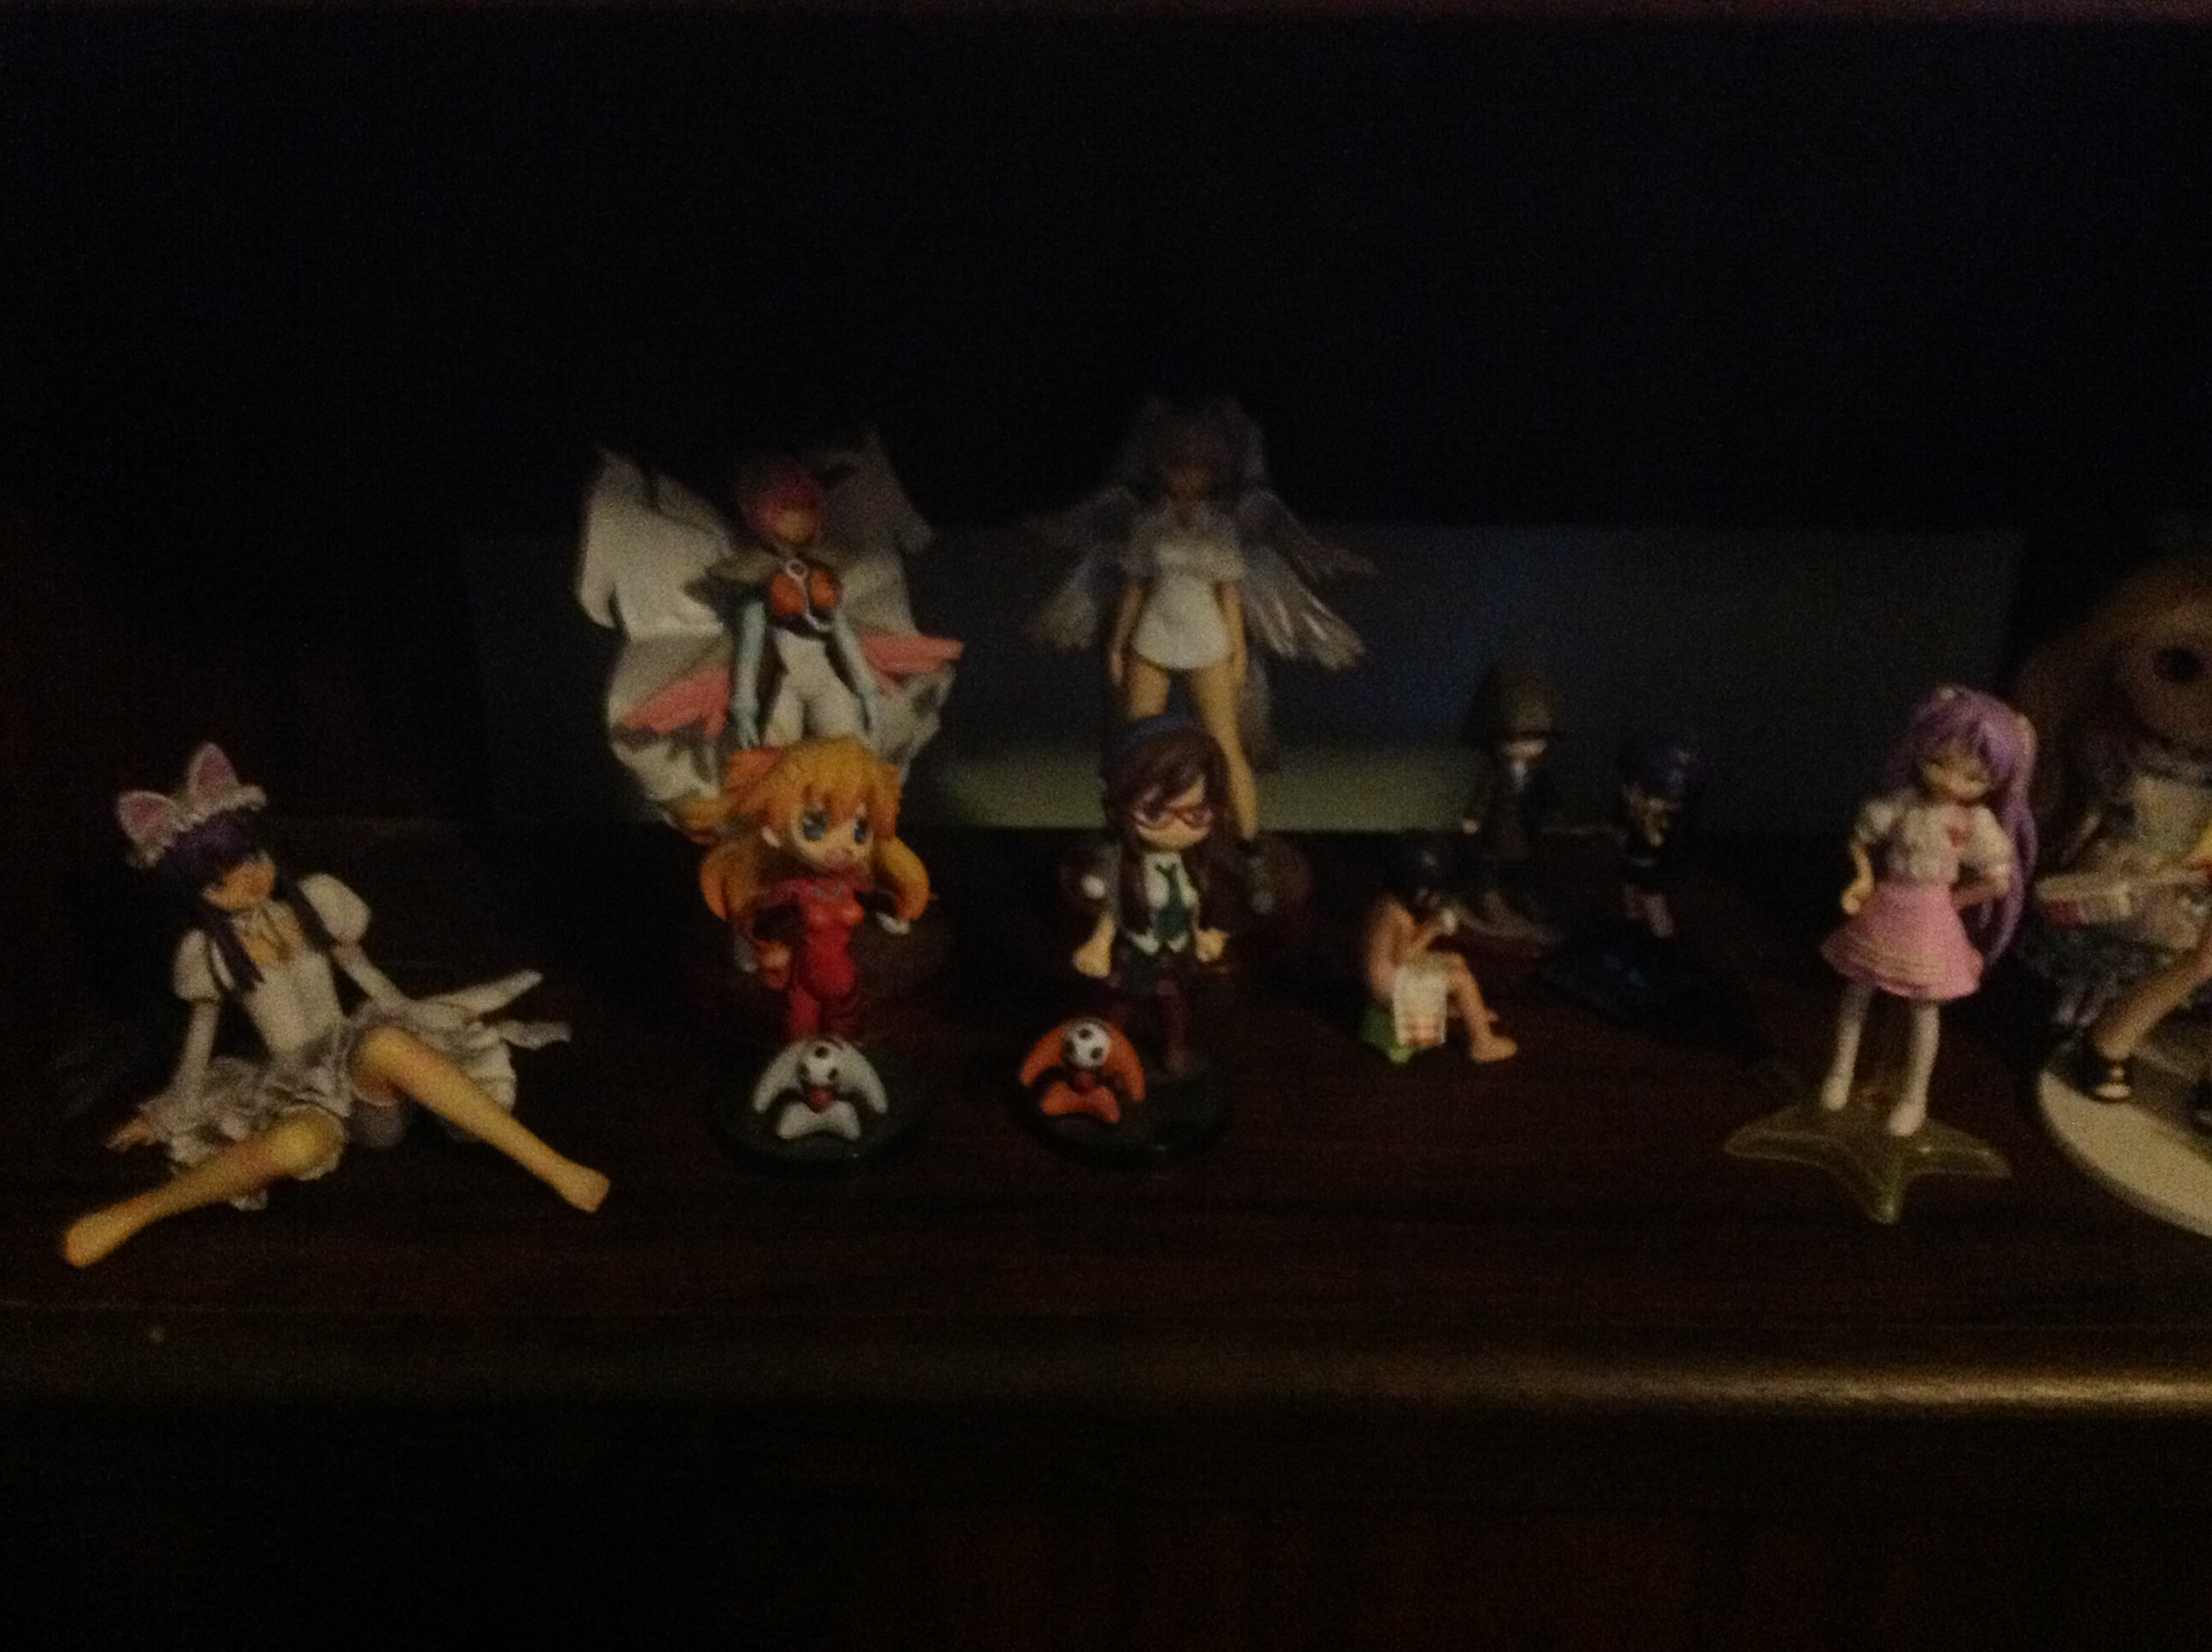 xopher  sale figures bemani offers this maybe depending from mini lilith have stuff figure dont really iidx here boxes style right uskoc jkoc will images broken seal front nagato back these again master taken make been both never cerberus tape otomedius works british lord fine price otherwise turntable